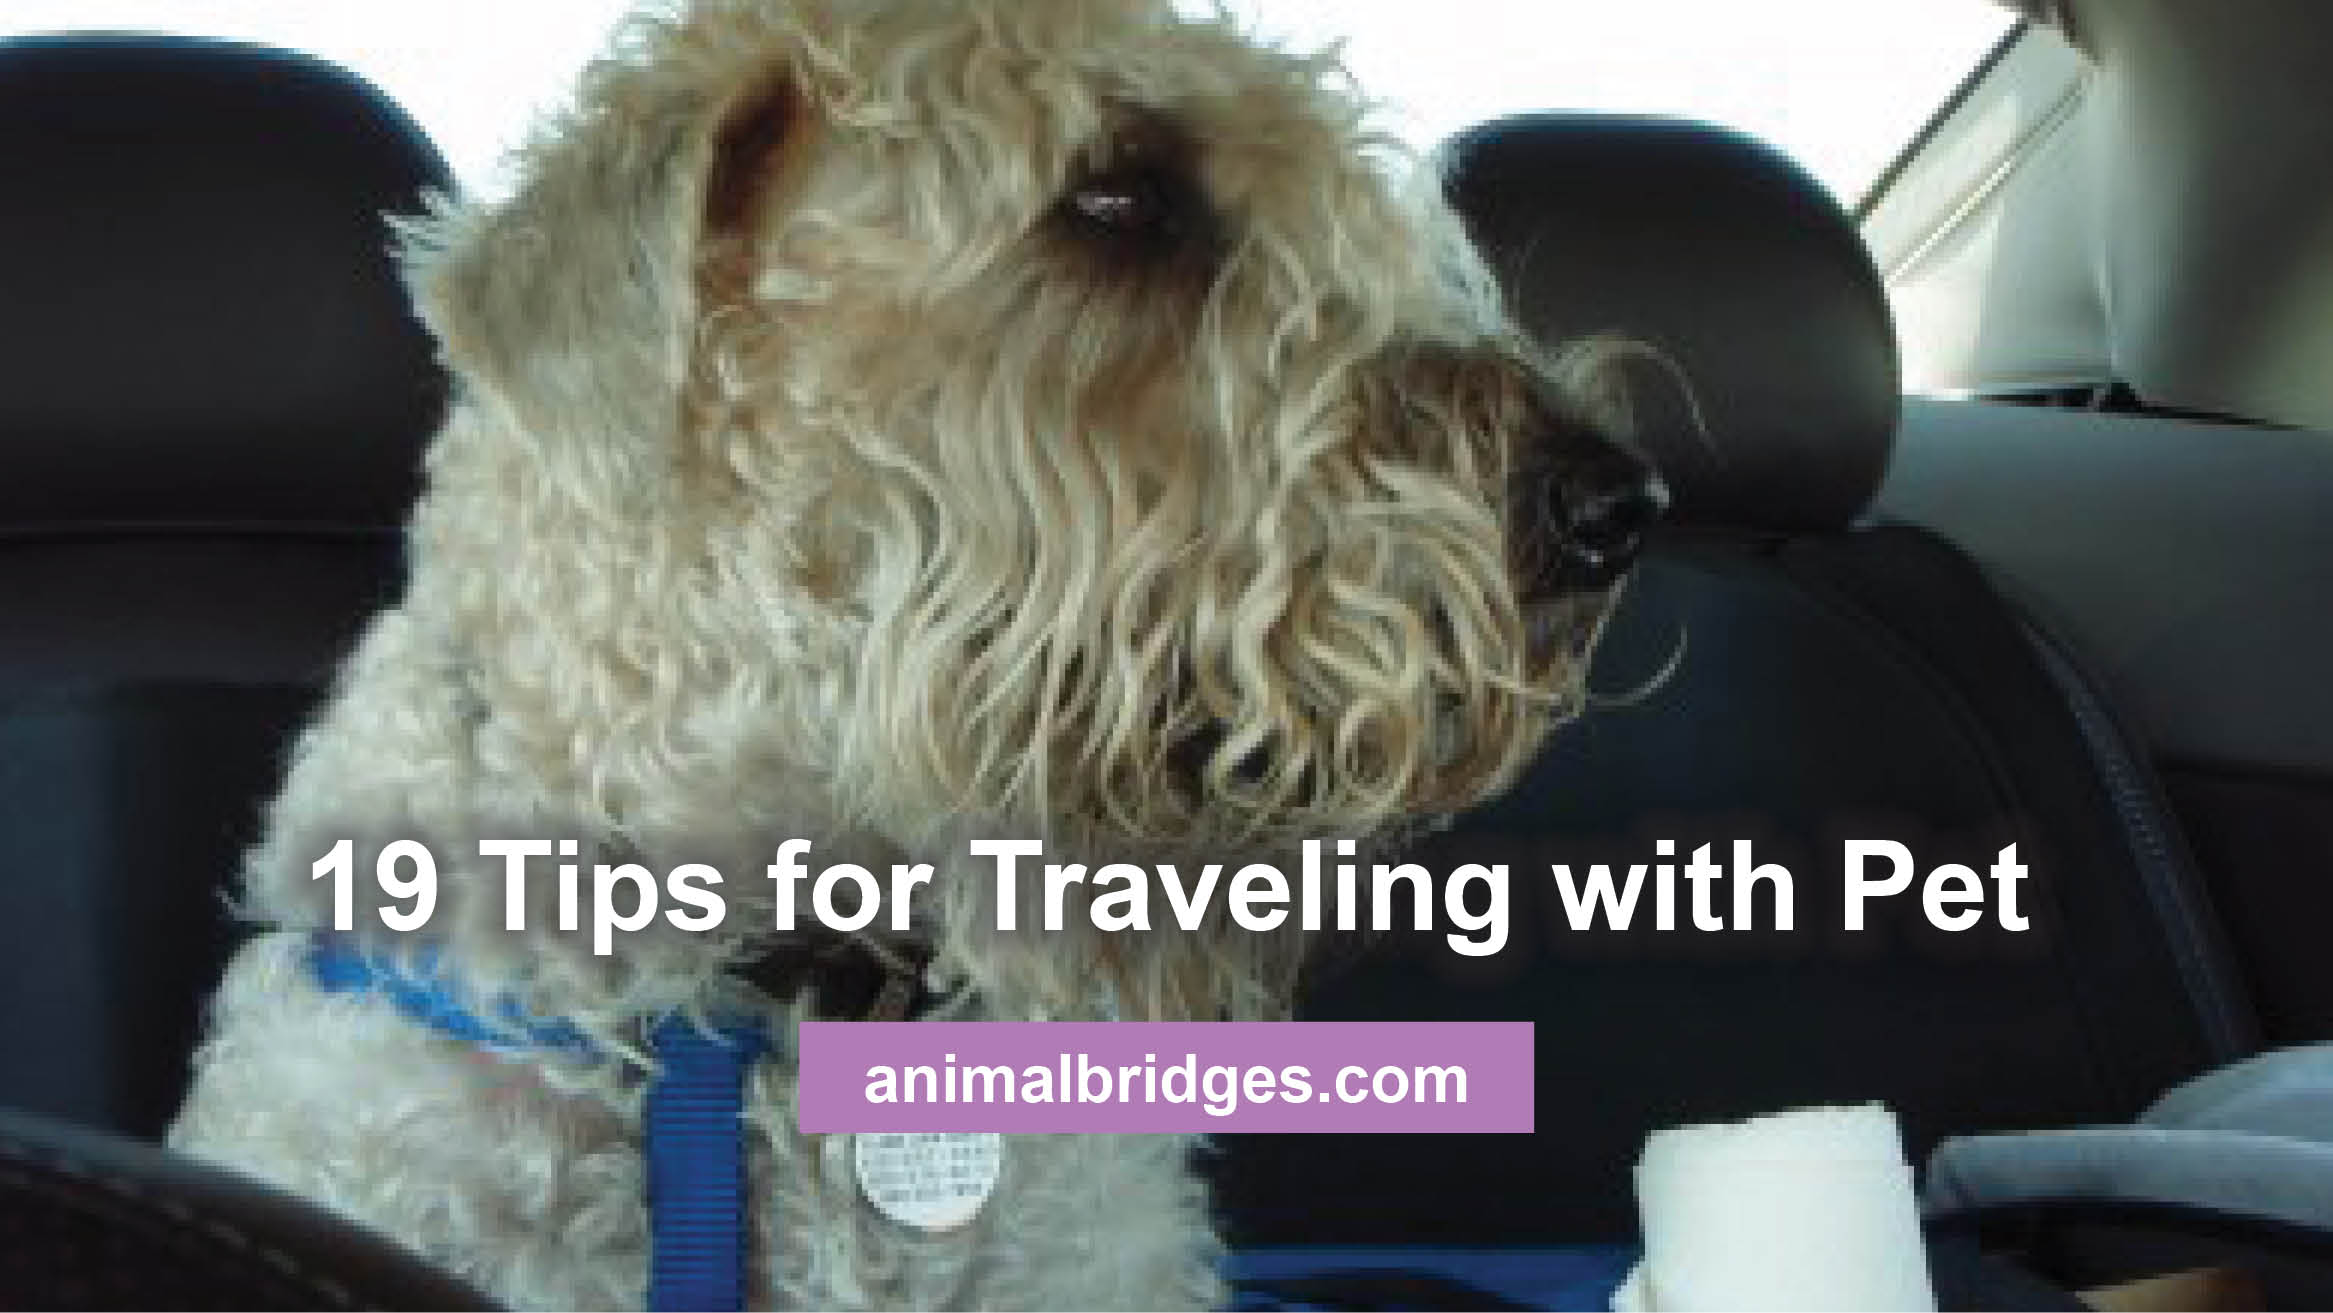 19-tips-for-traveling